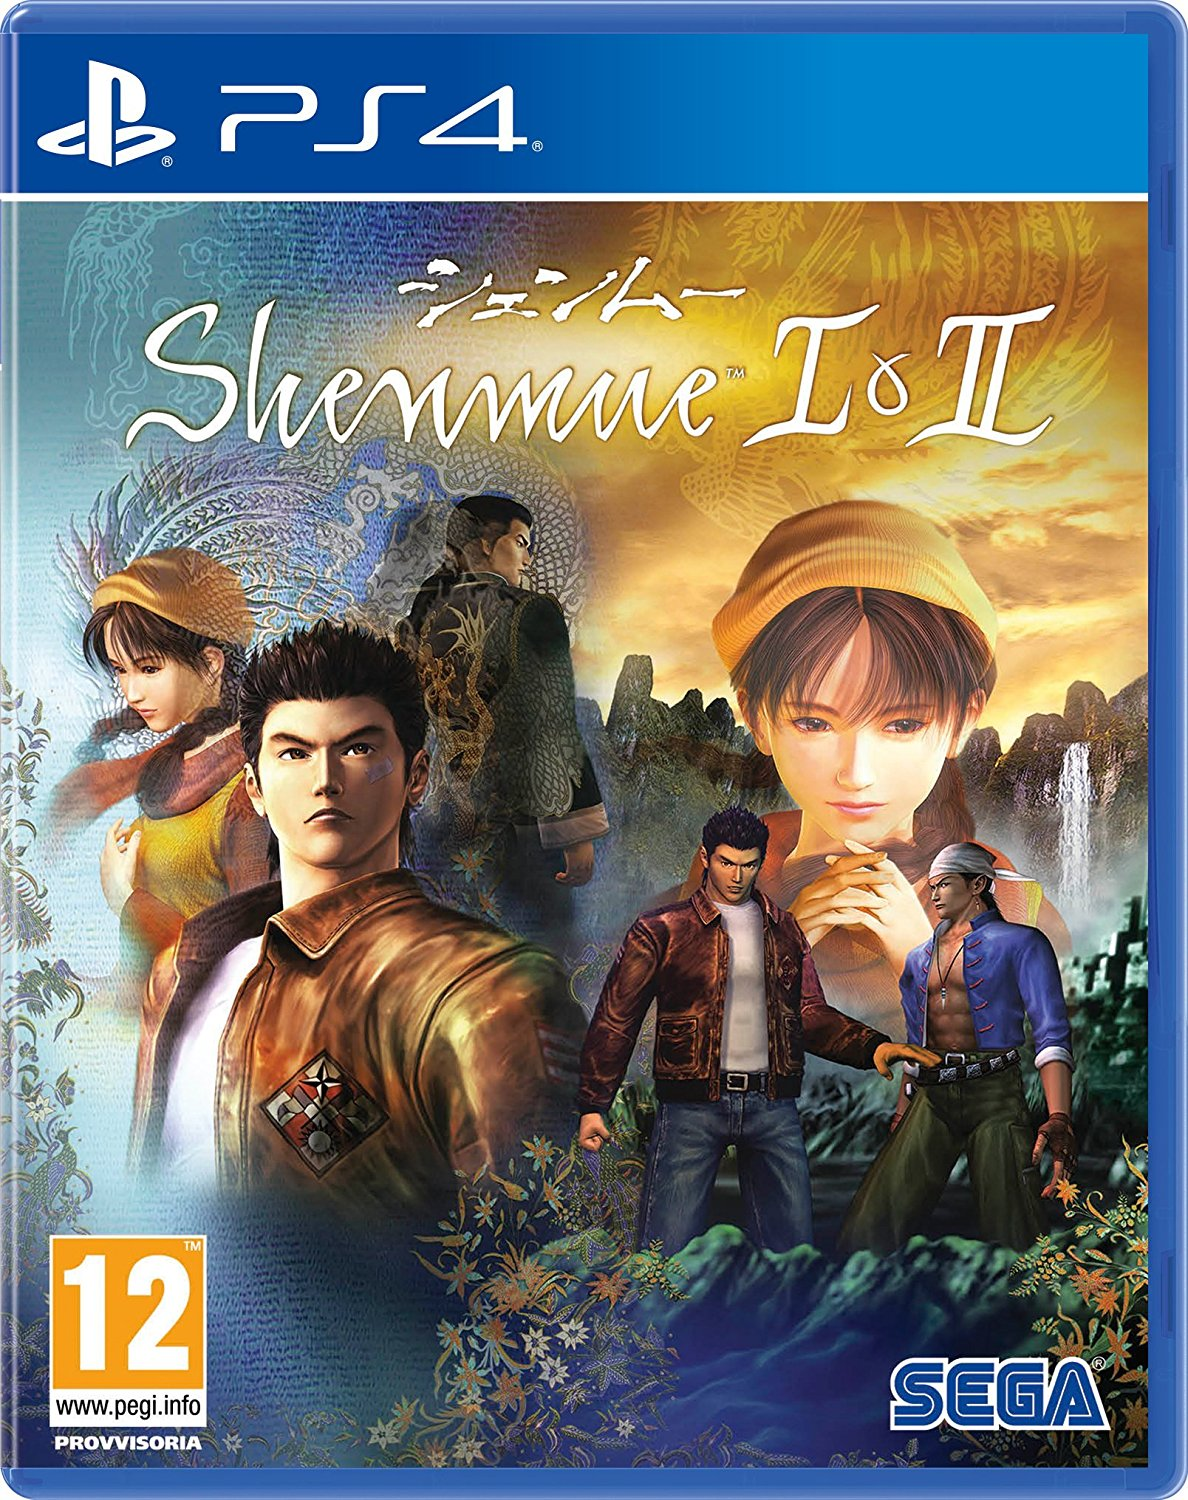 Acquista ora Shenmue!